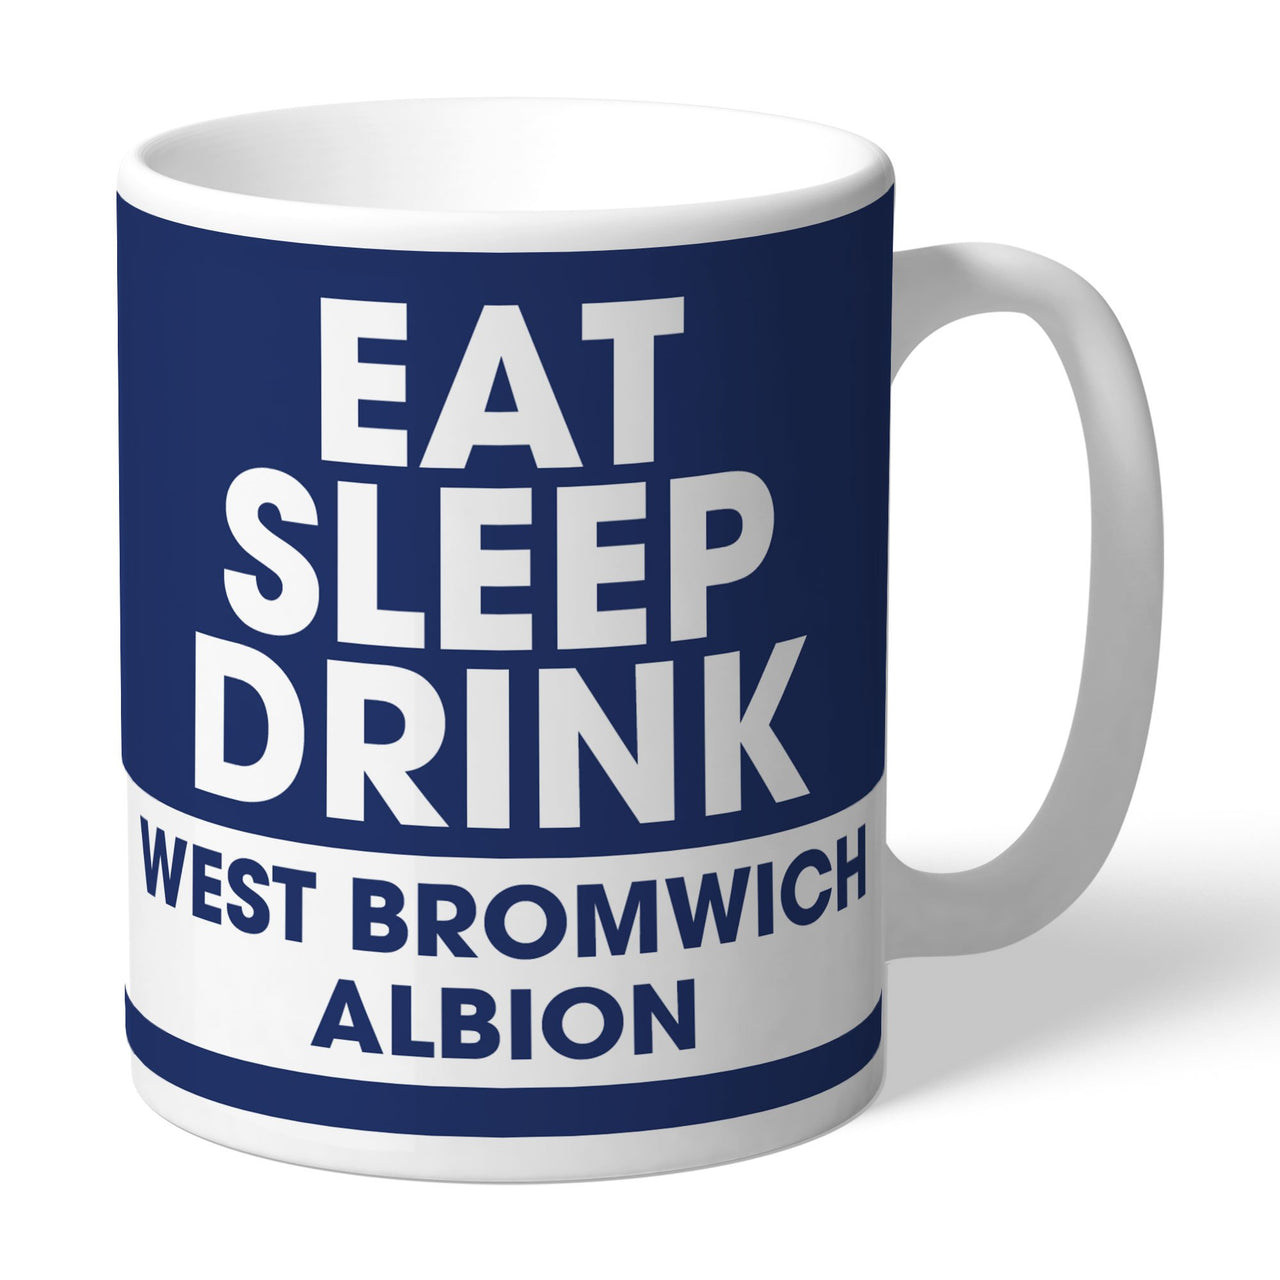 West Bromwich Albion FC Eat Sleep Drink Mugs, Gifts